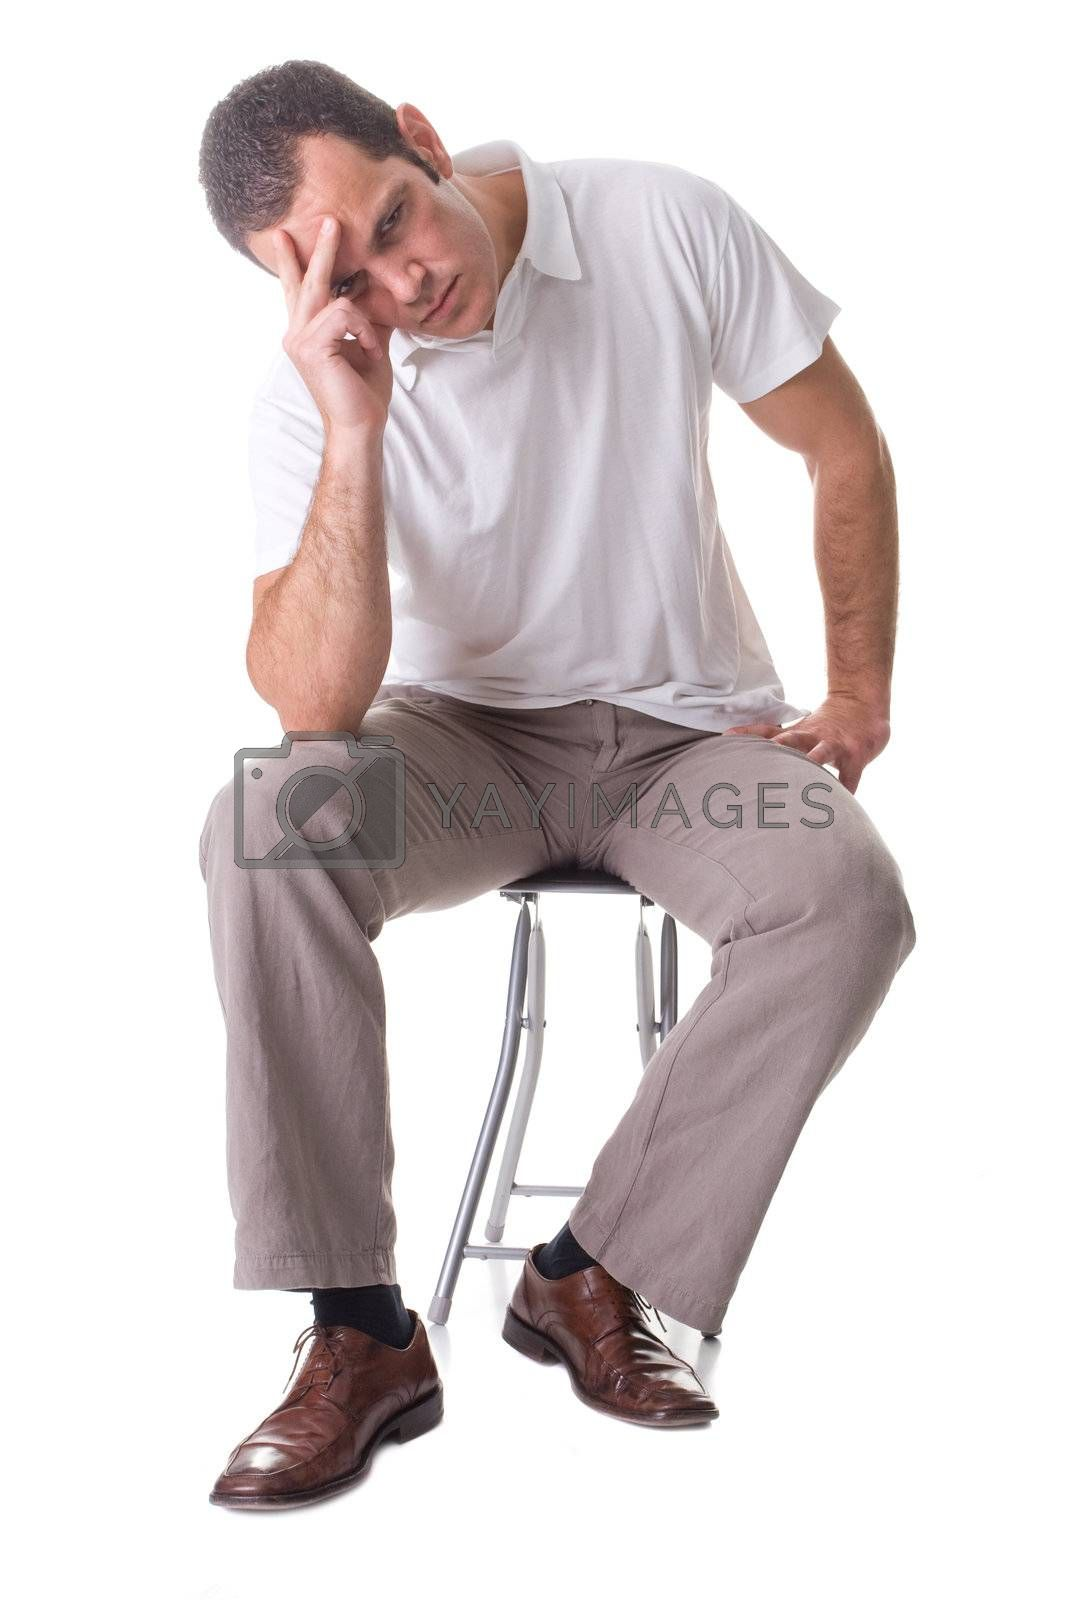 A young man, sitting on a stool, thinking. Isolated on white background.